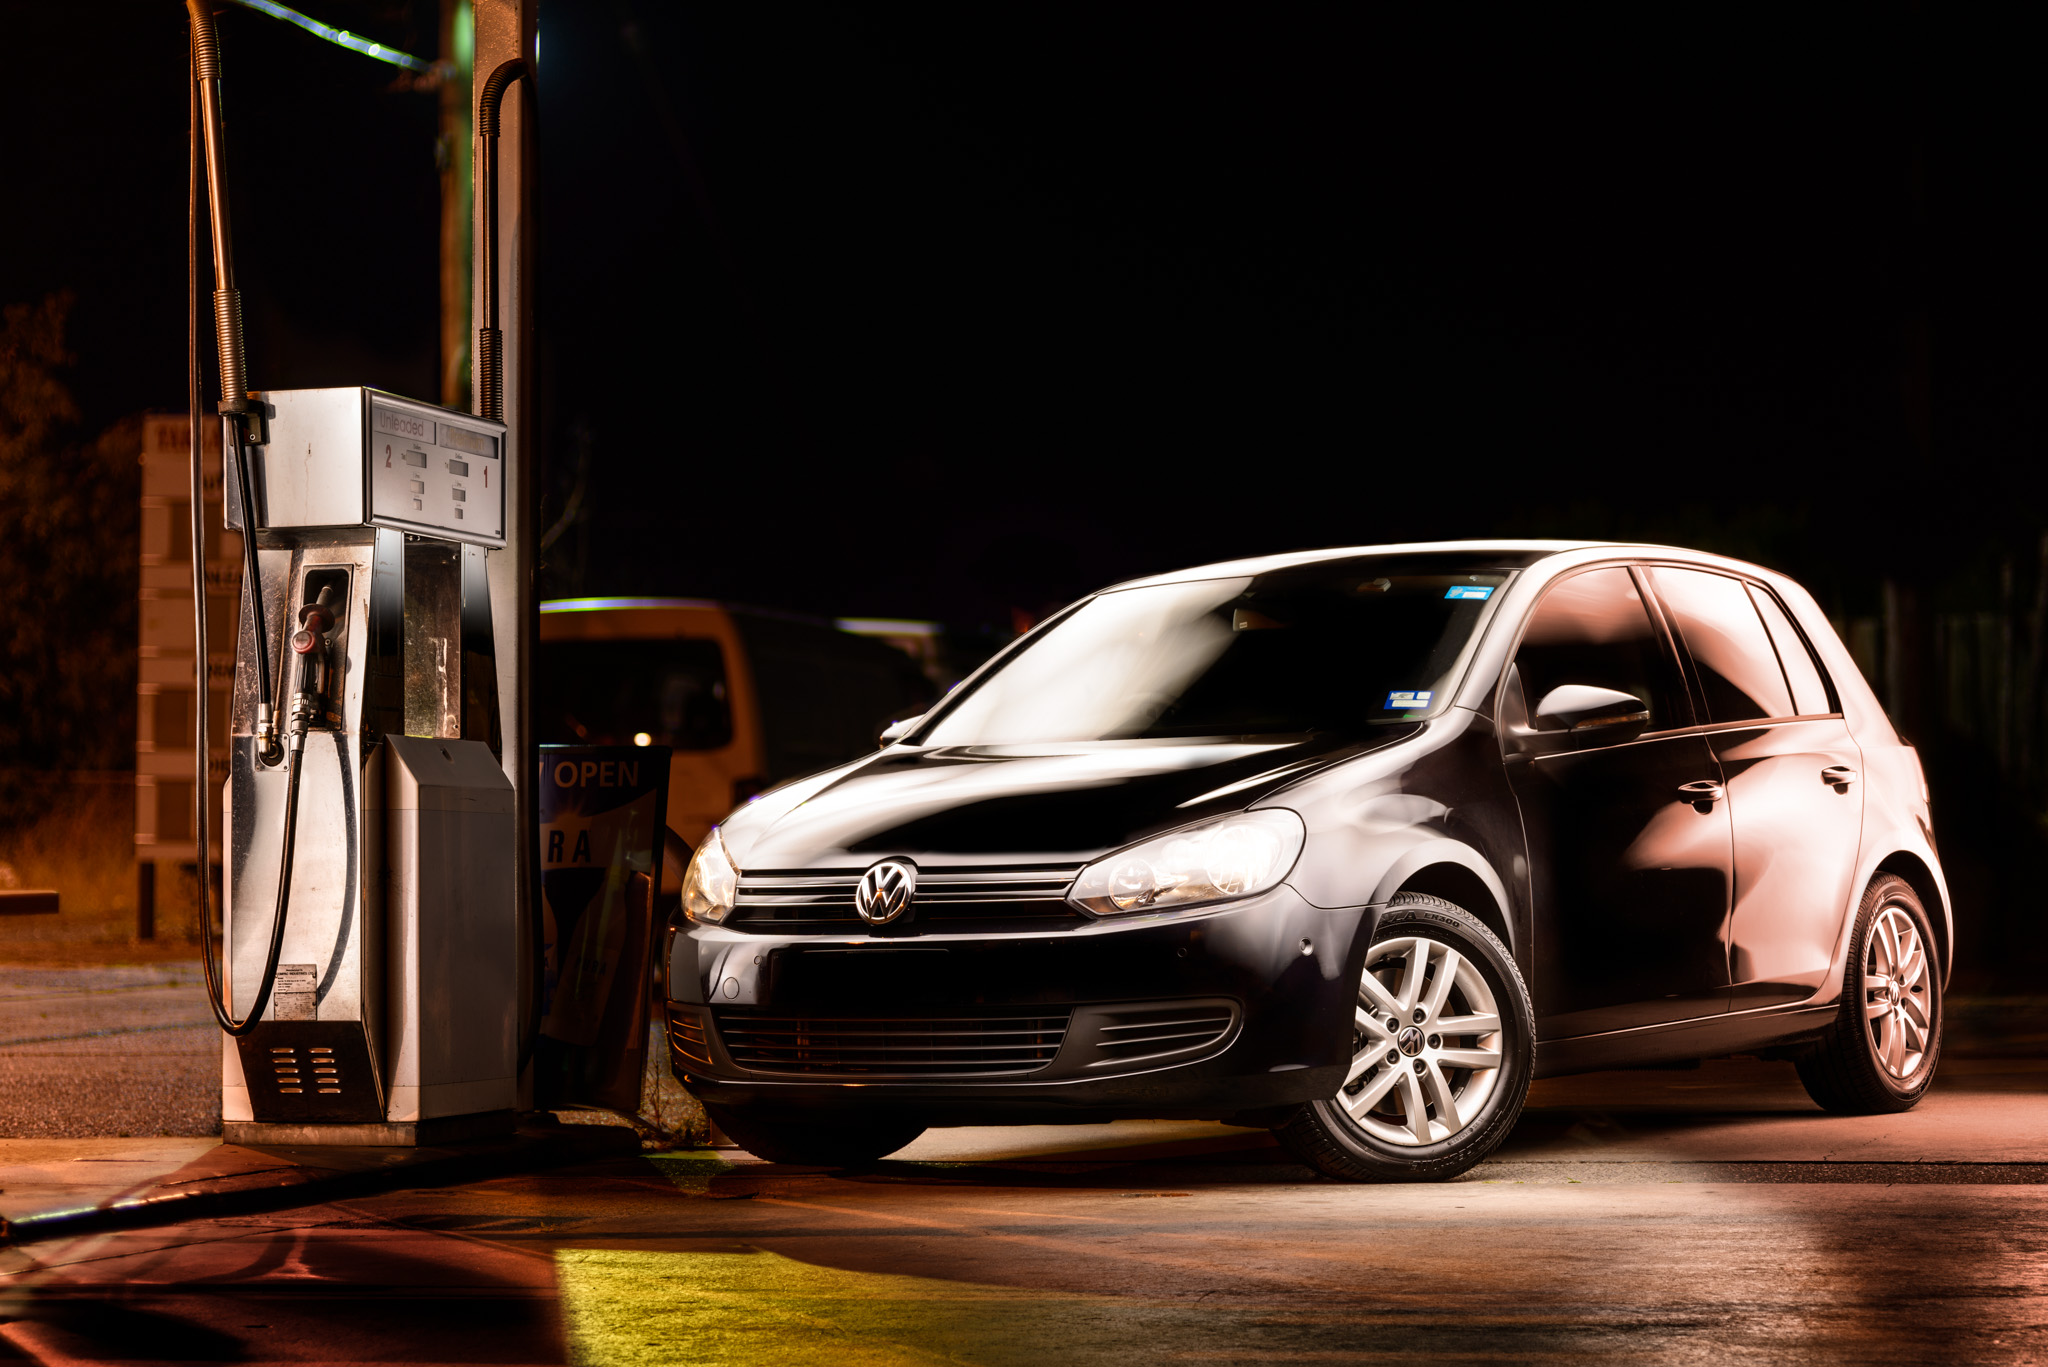 Light Painting - Light Painting - Volkswagen Golf Mk6 black at petrol station